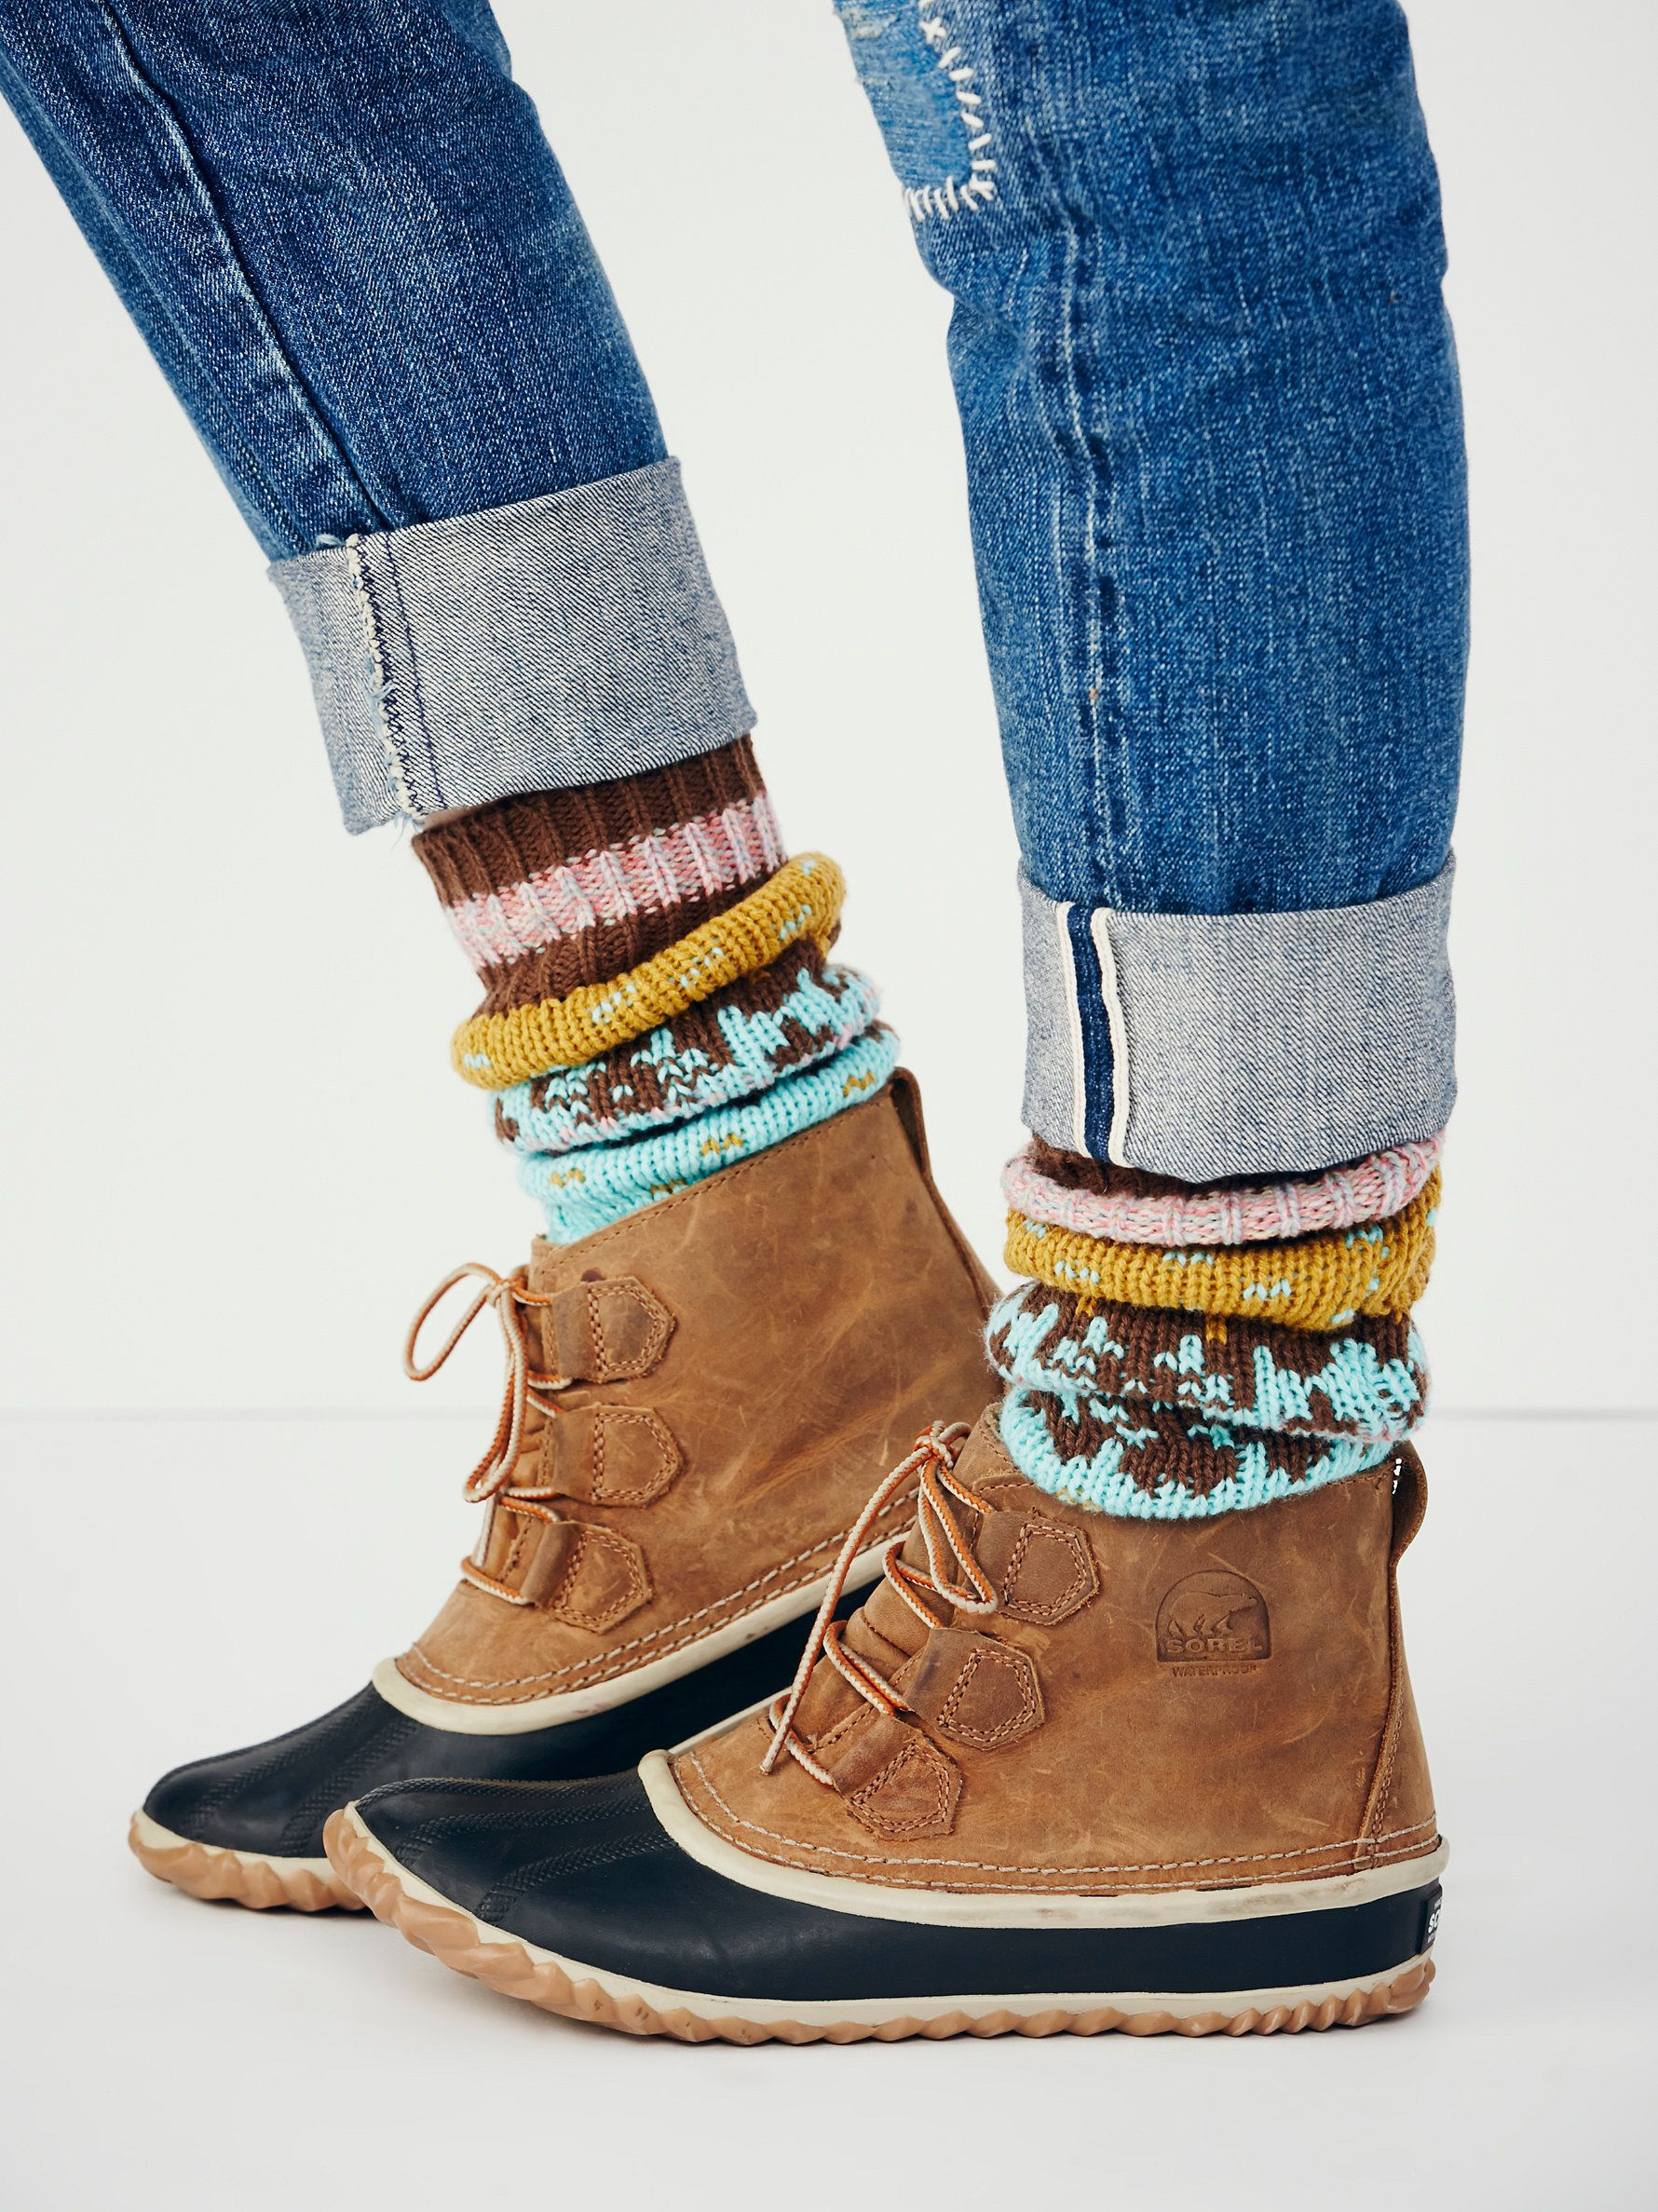 Sorel boots outfit